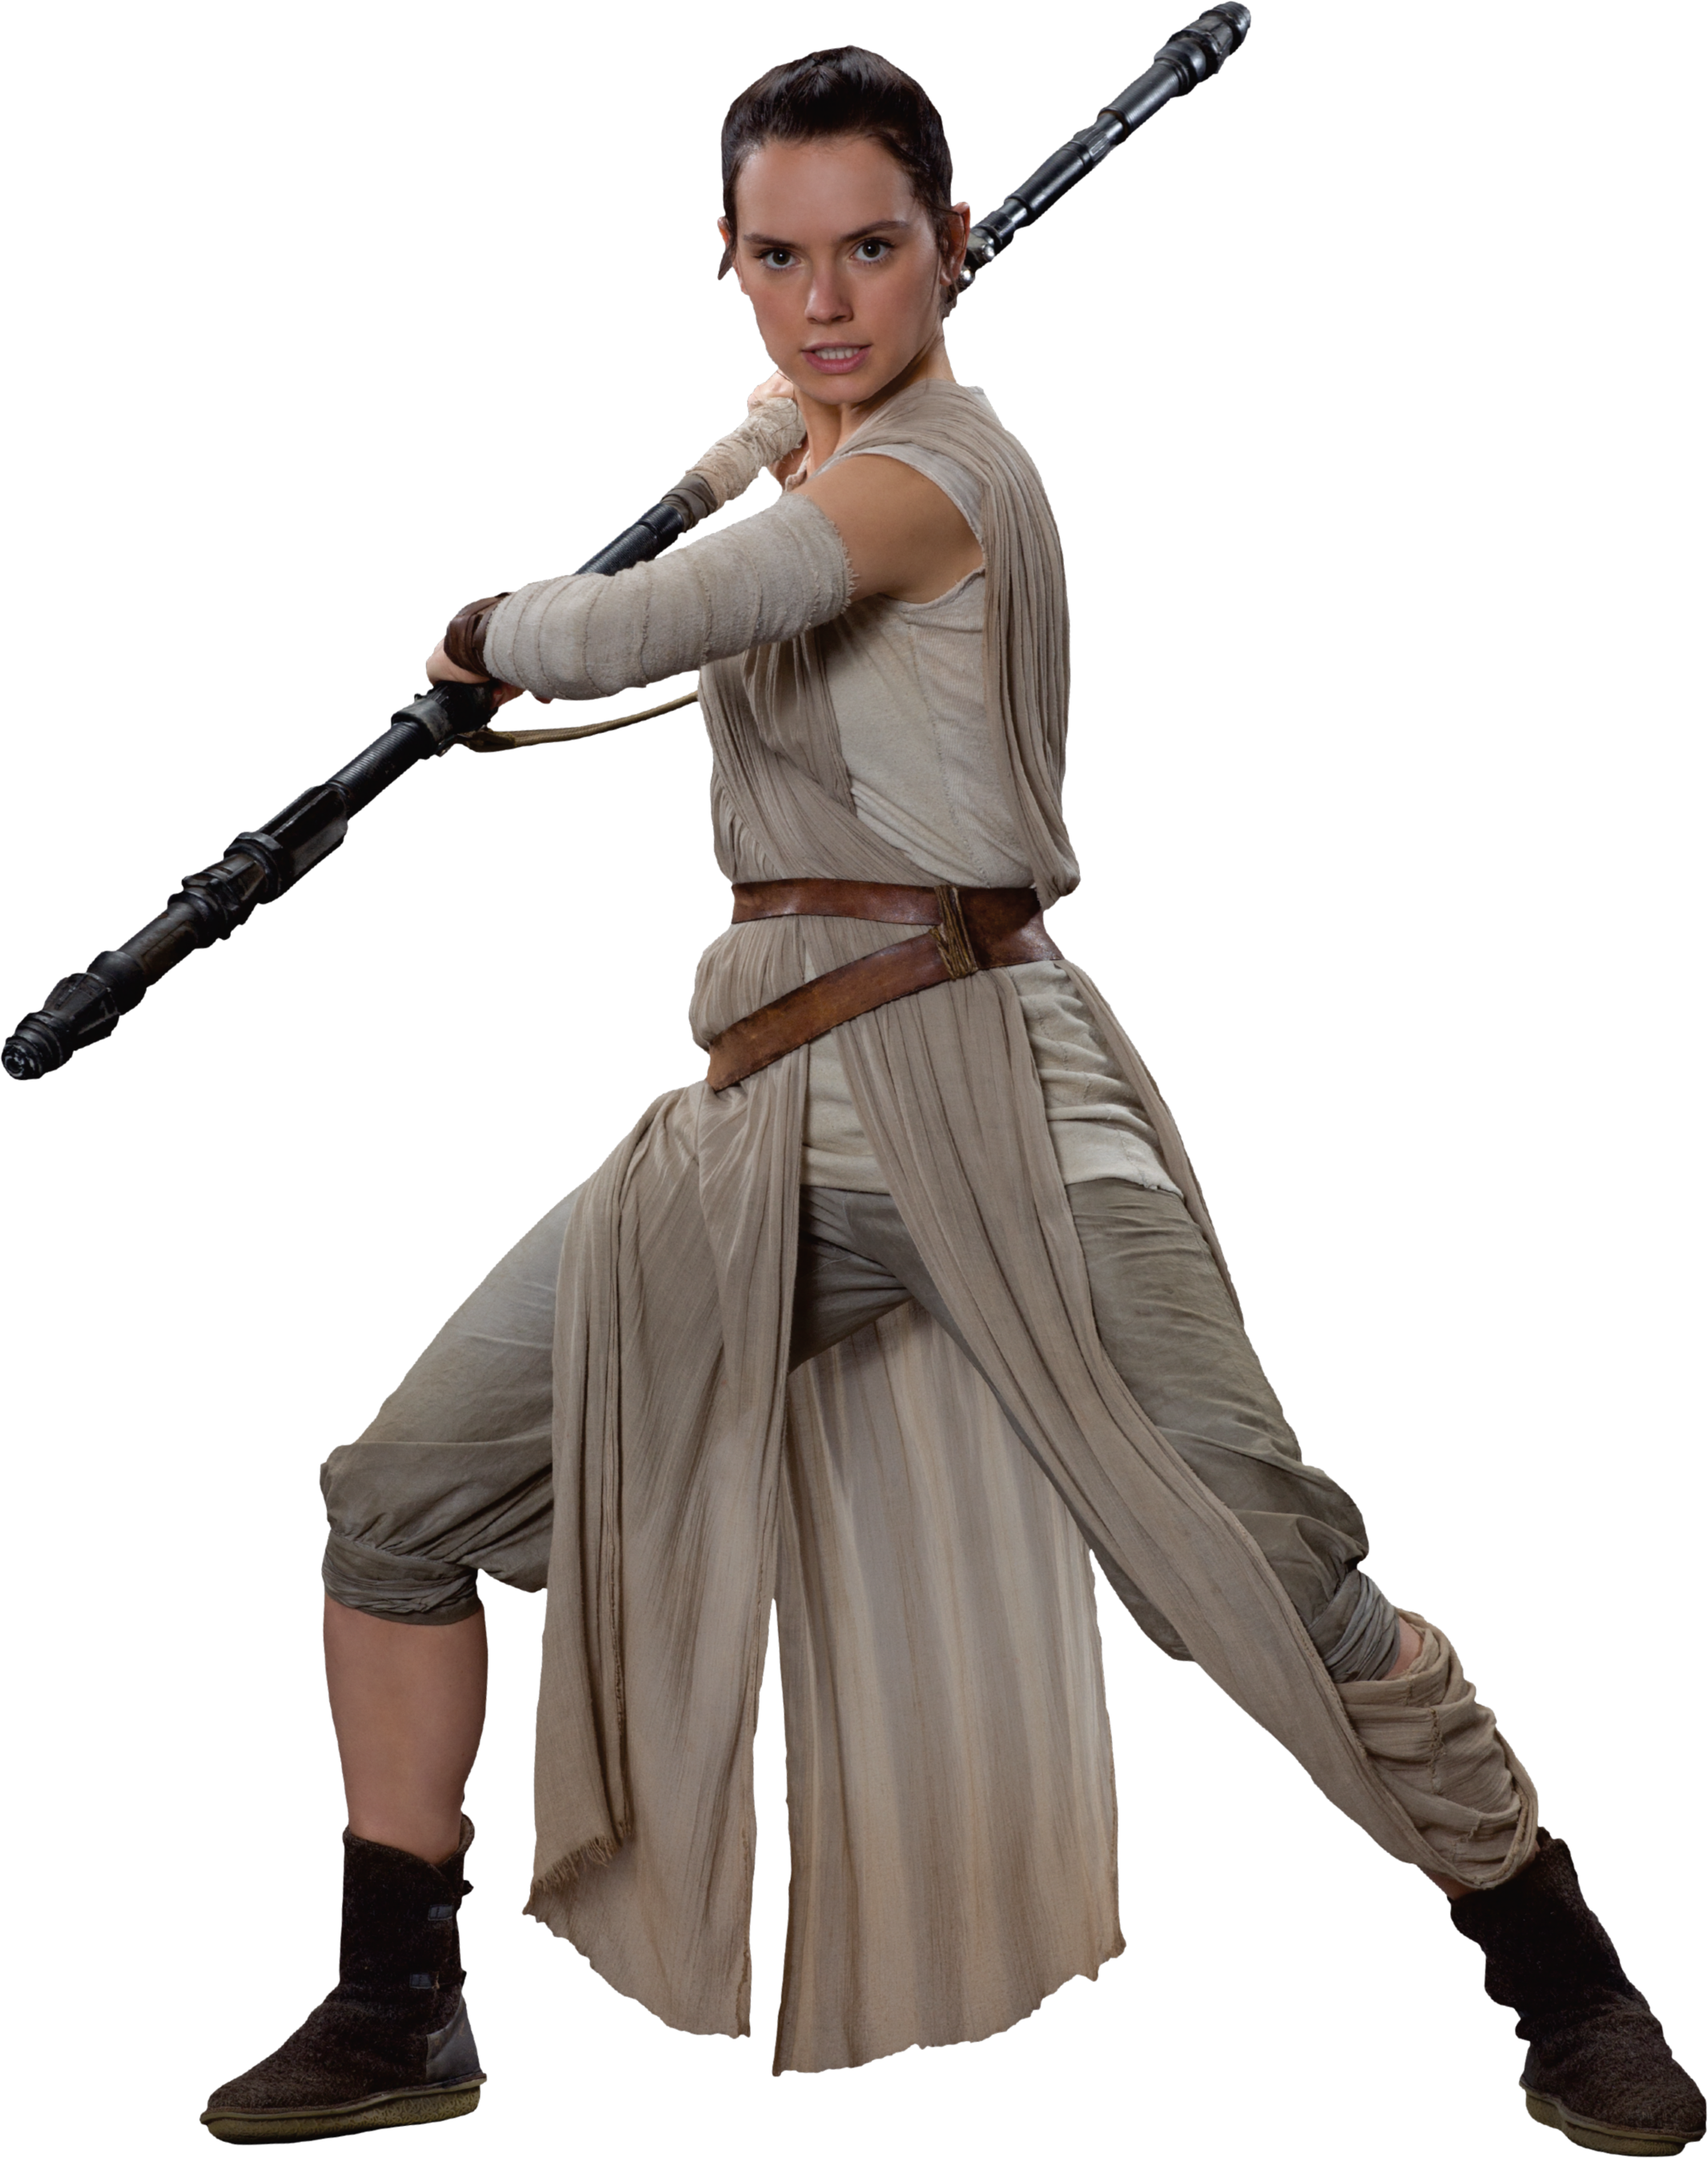 star wars png photo images and clipart pngimg rey skywalker star wars png png image